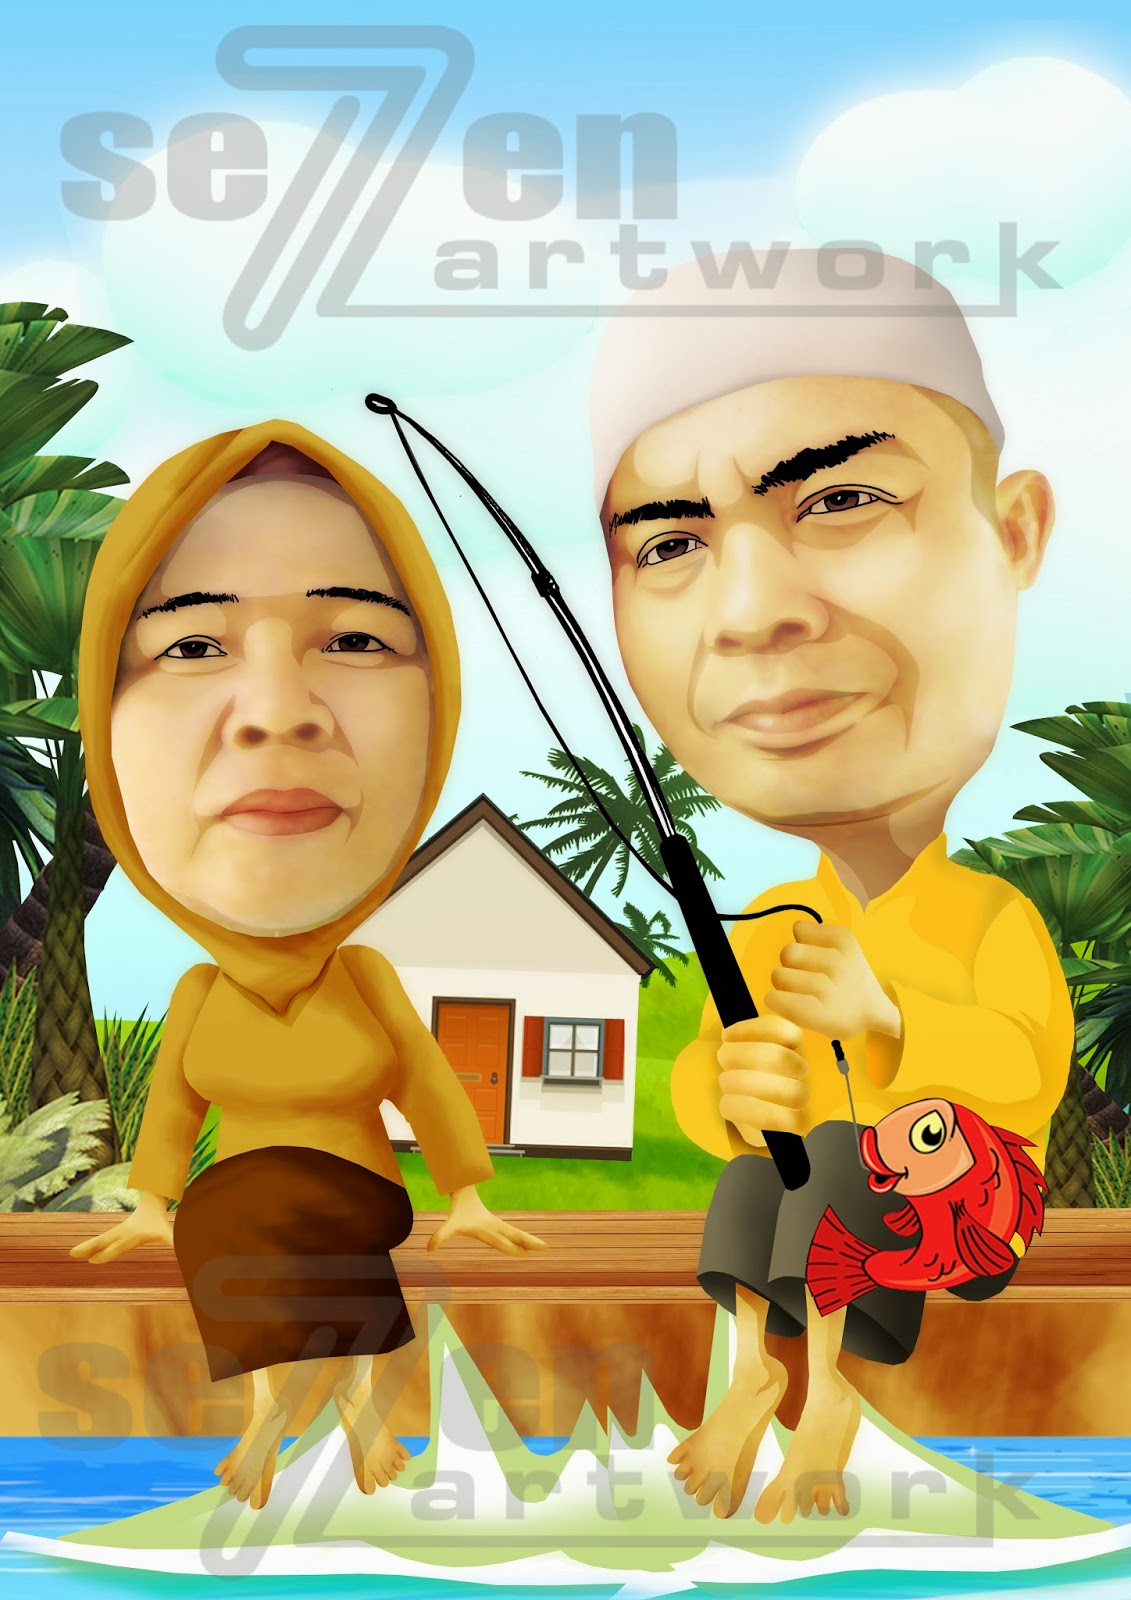 SEVENARTWORK CARTOON